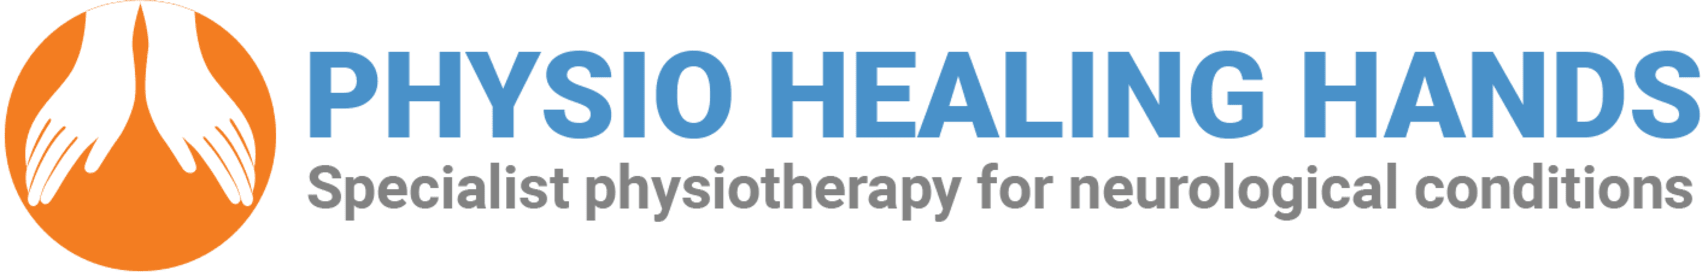 Physiohealinghands